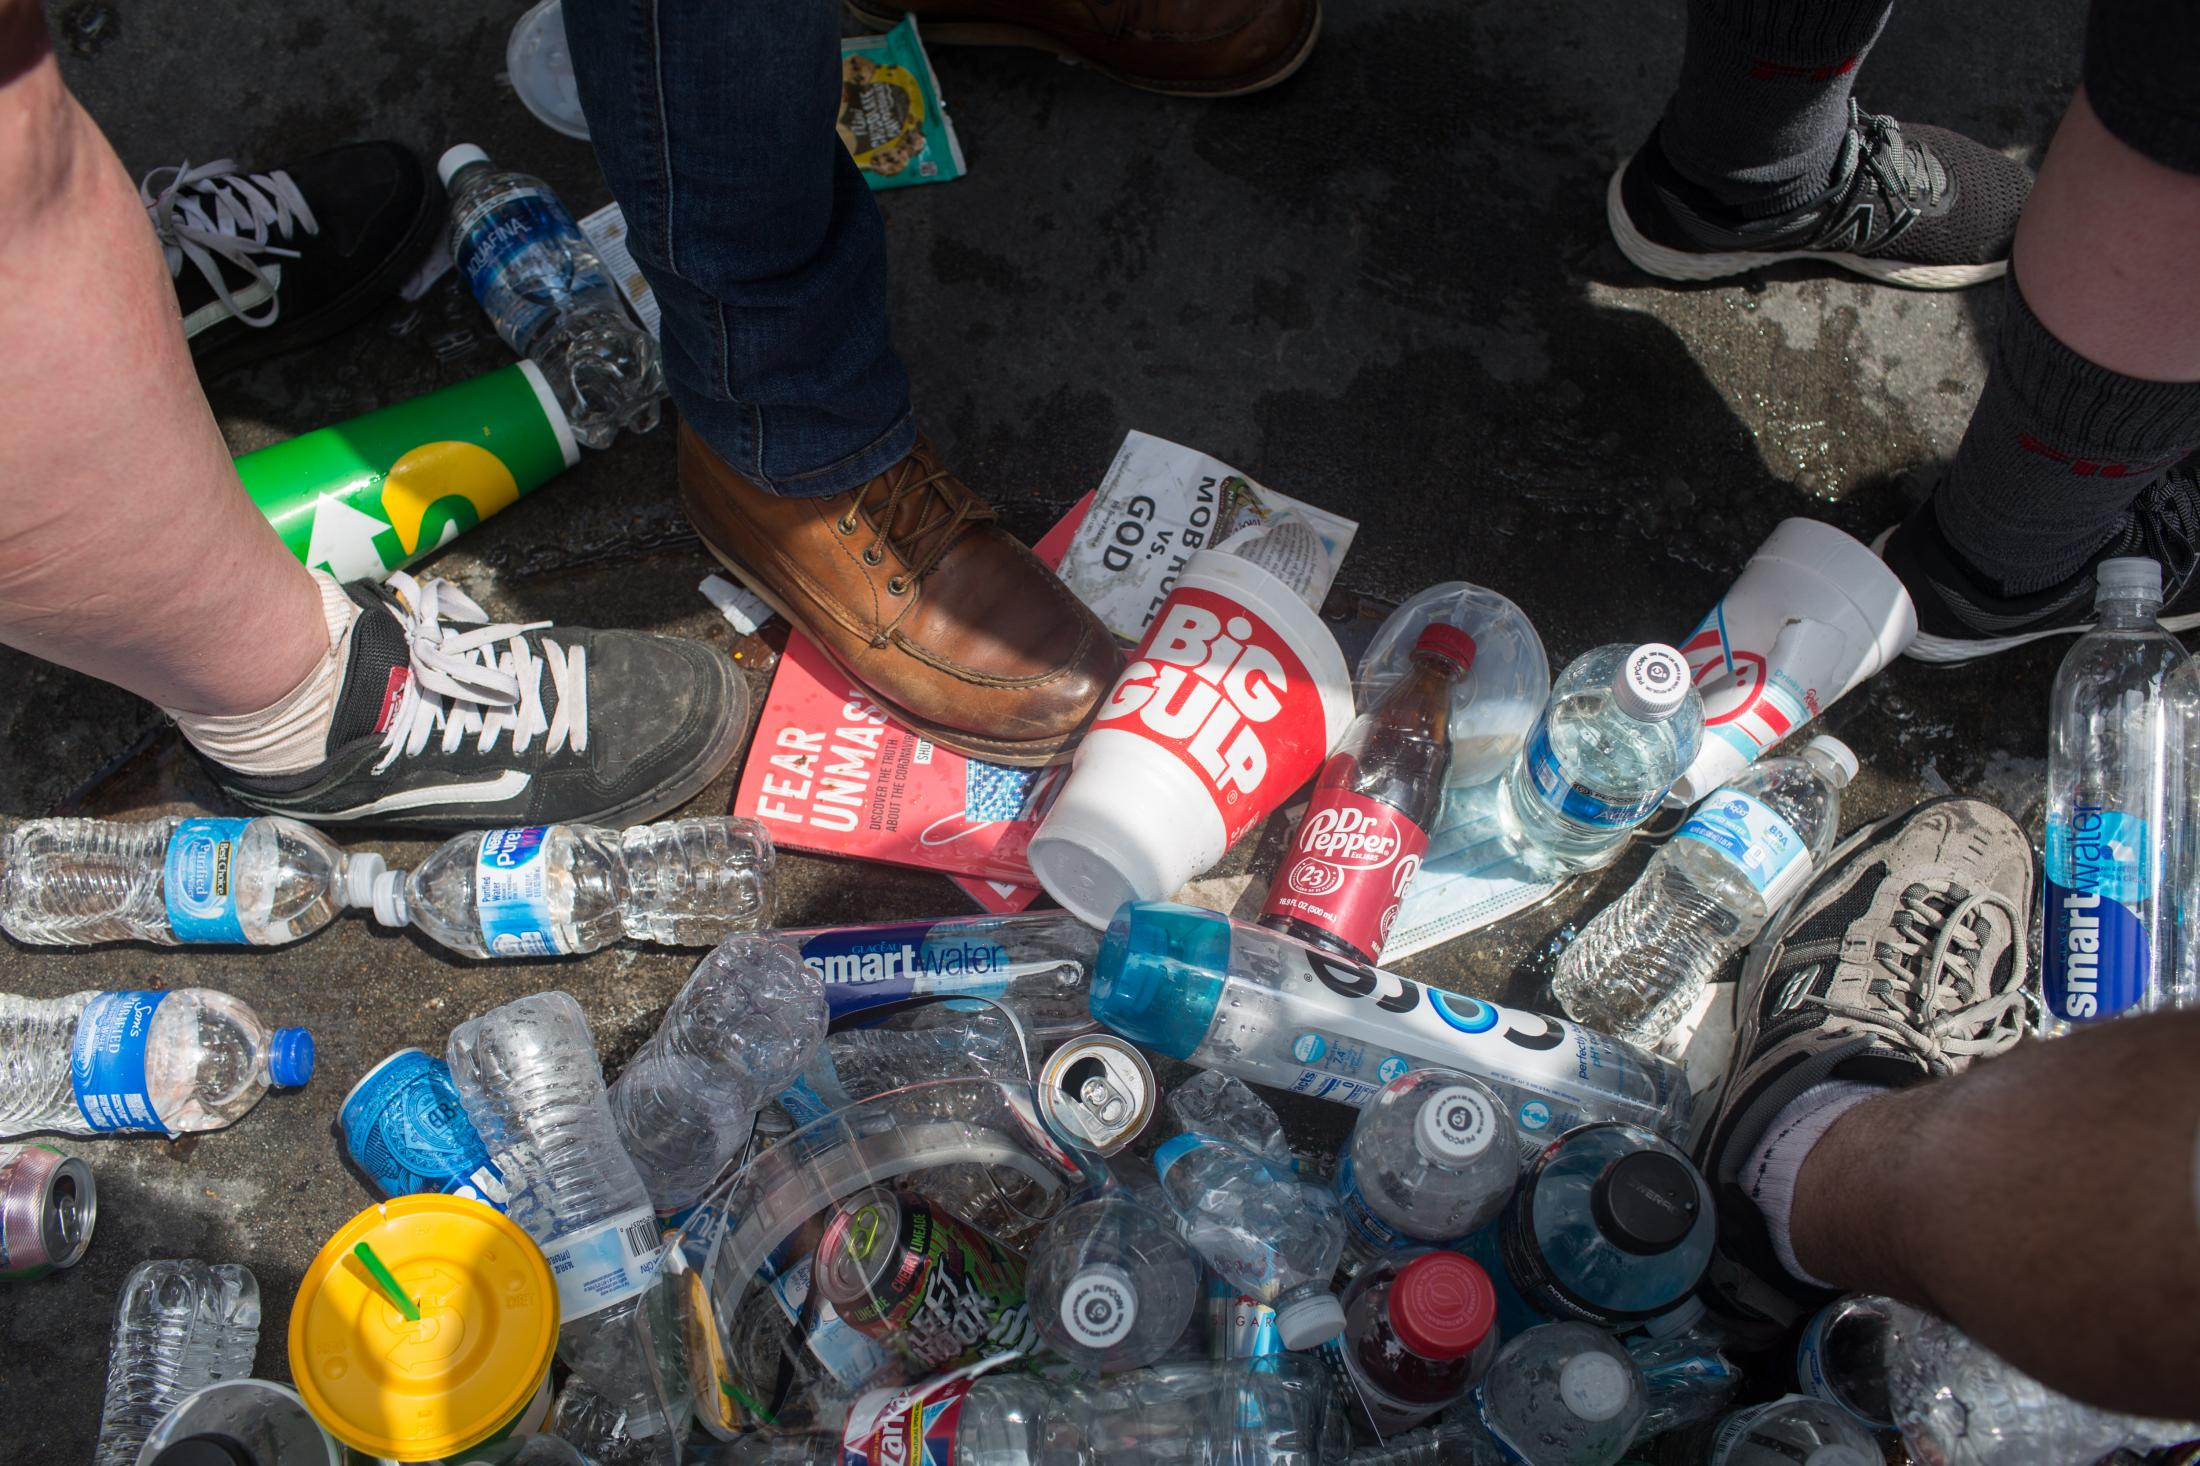 Trash is piled up in front of barricades set up at the 4th Street entrance to the BOK Center in Tulsa before the start of Donald Trump's campaign rally on June 20, 2020. Trash was left behind as people walking through security were told they could not bring in certain items.